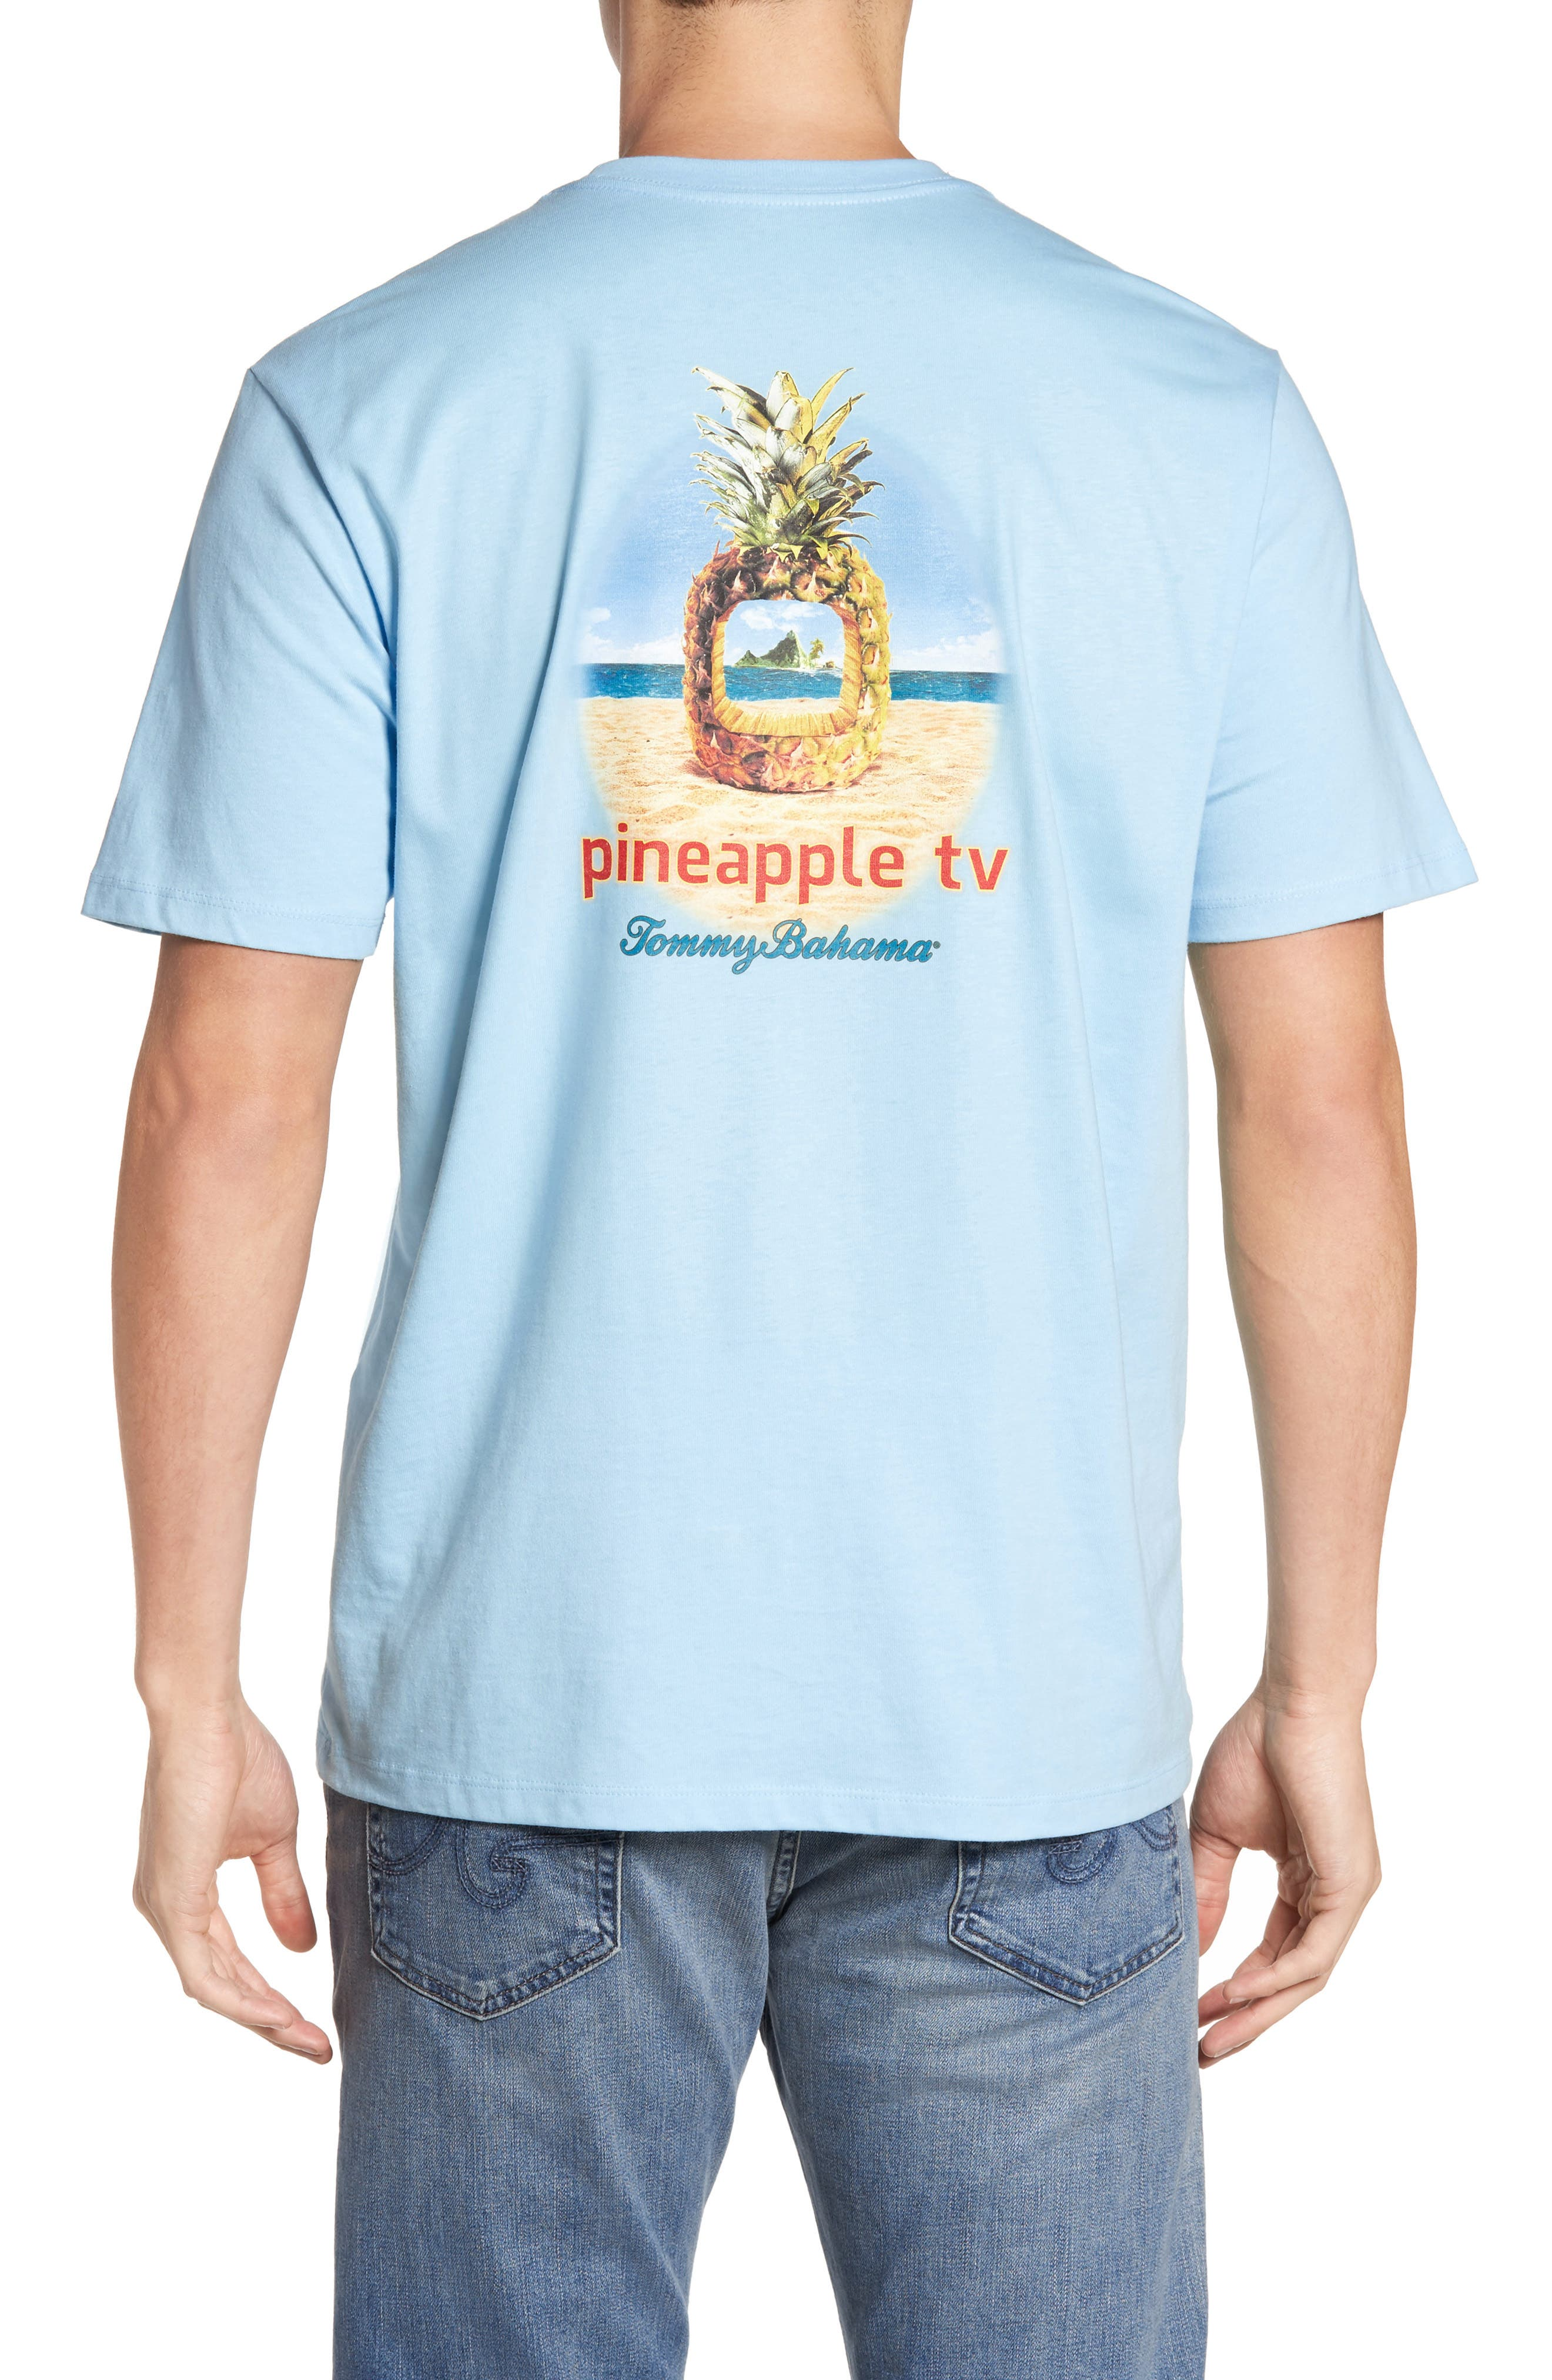 Alternate Image 1 Selected - Tommy Bahama Pineapple TV Graphic T-Shirt